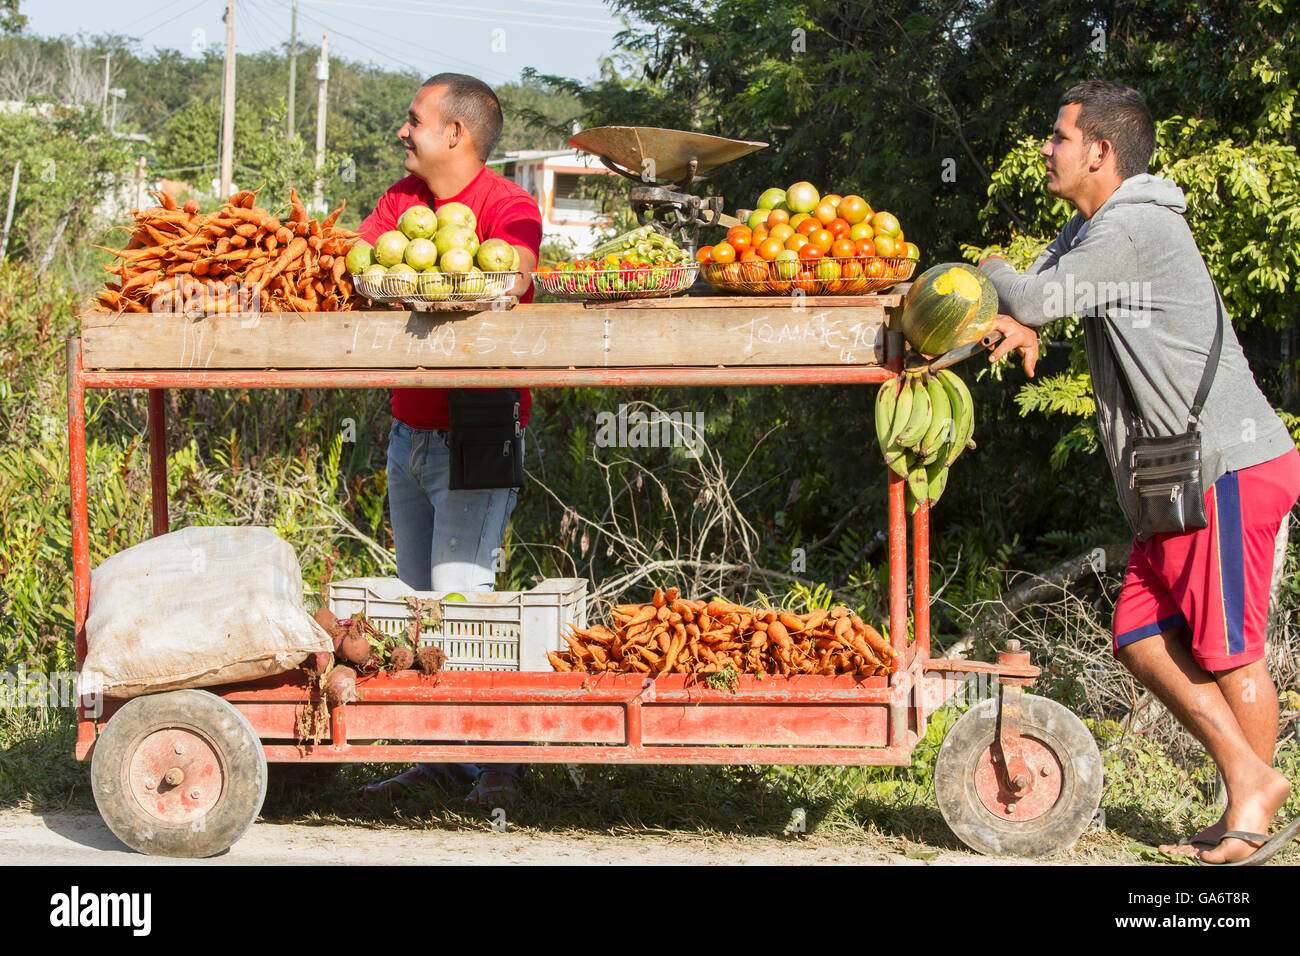 Part of the evolving economy in Cuba, two men with produce cart sell fruits and vegetables beside the road in Playa - Stock Image